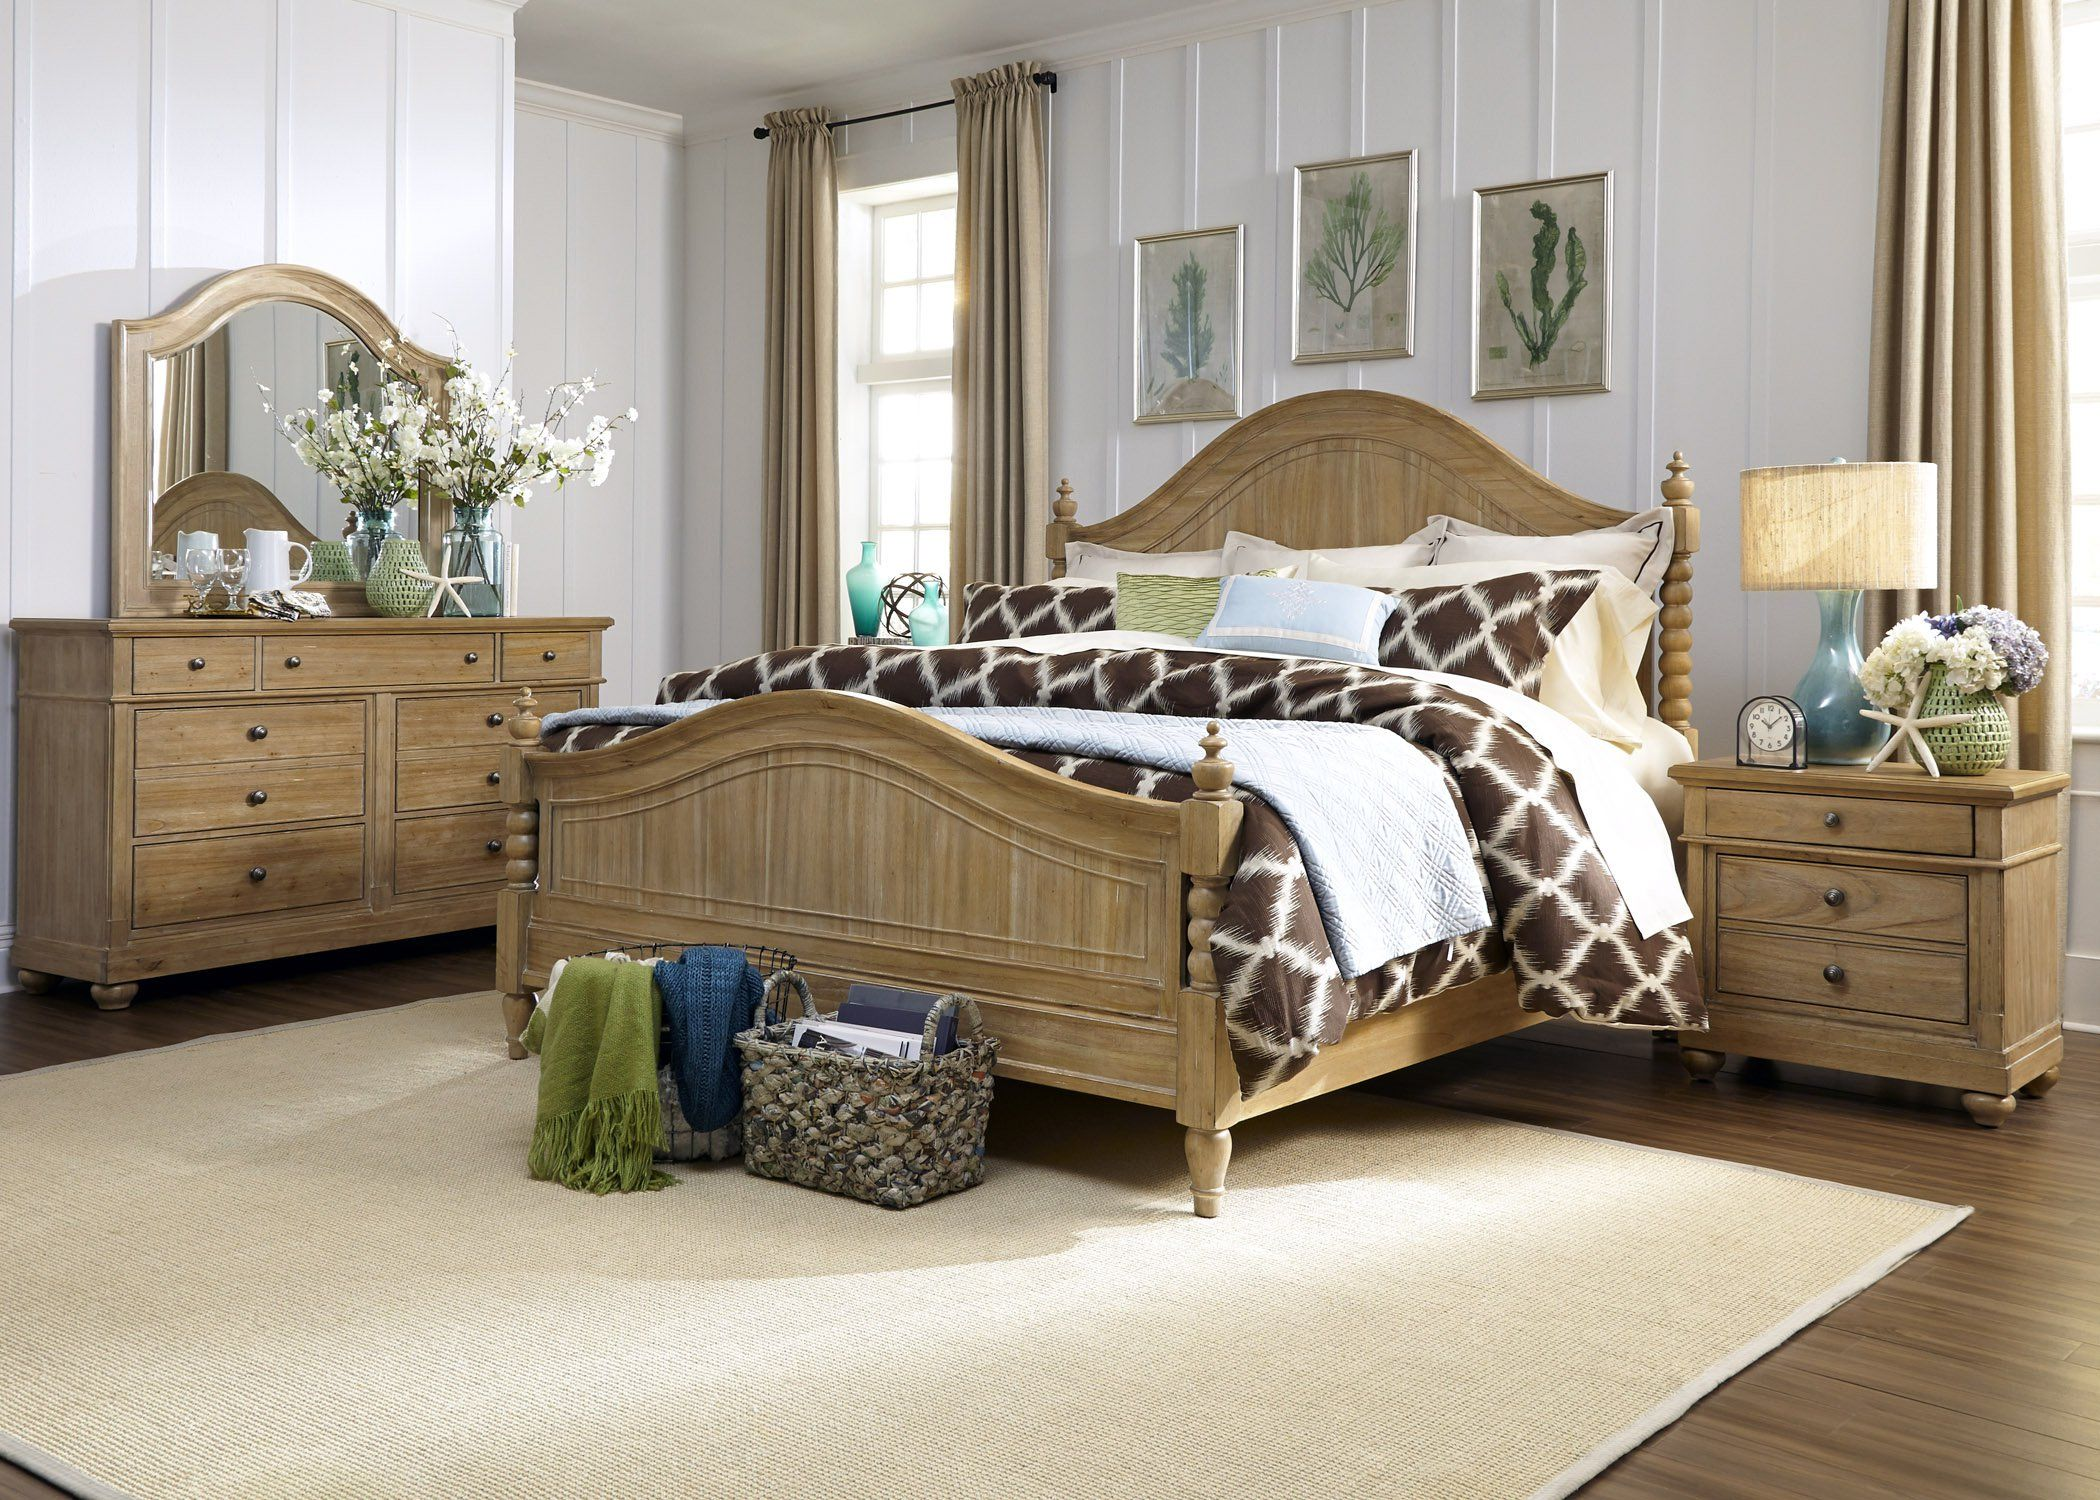 Liberty Furniture Industries Harbor View Collection Poster Bed Set - Liberty furniture industries bedroom sets